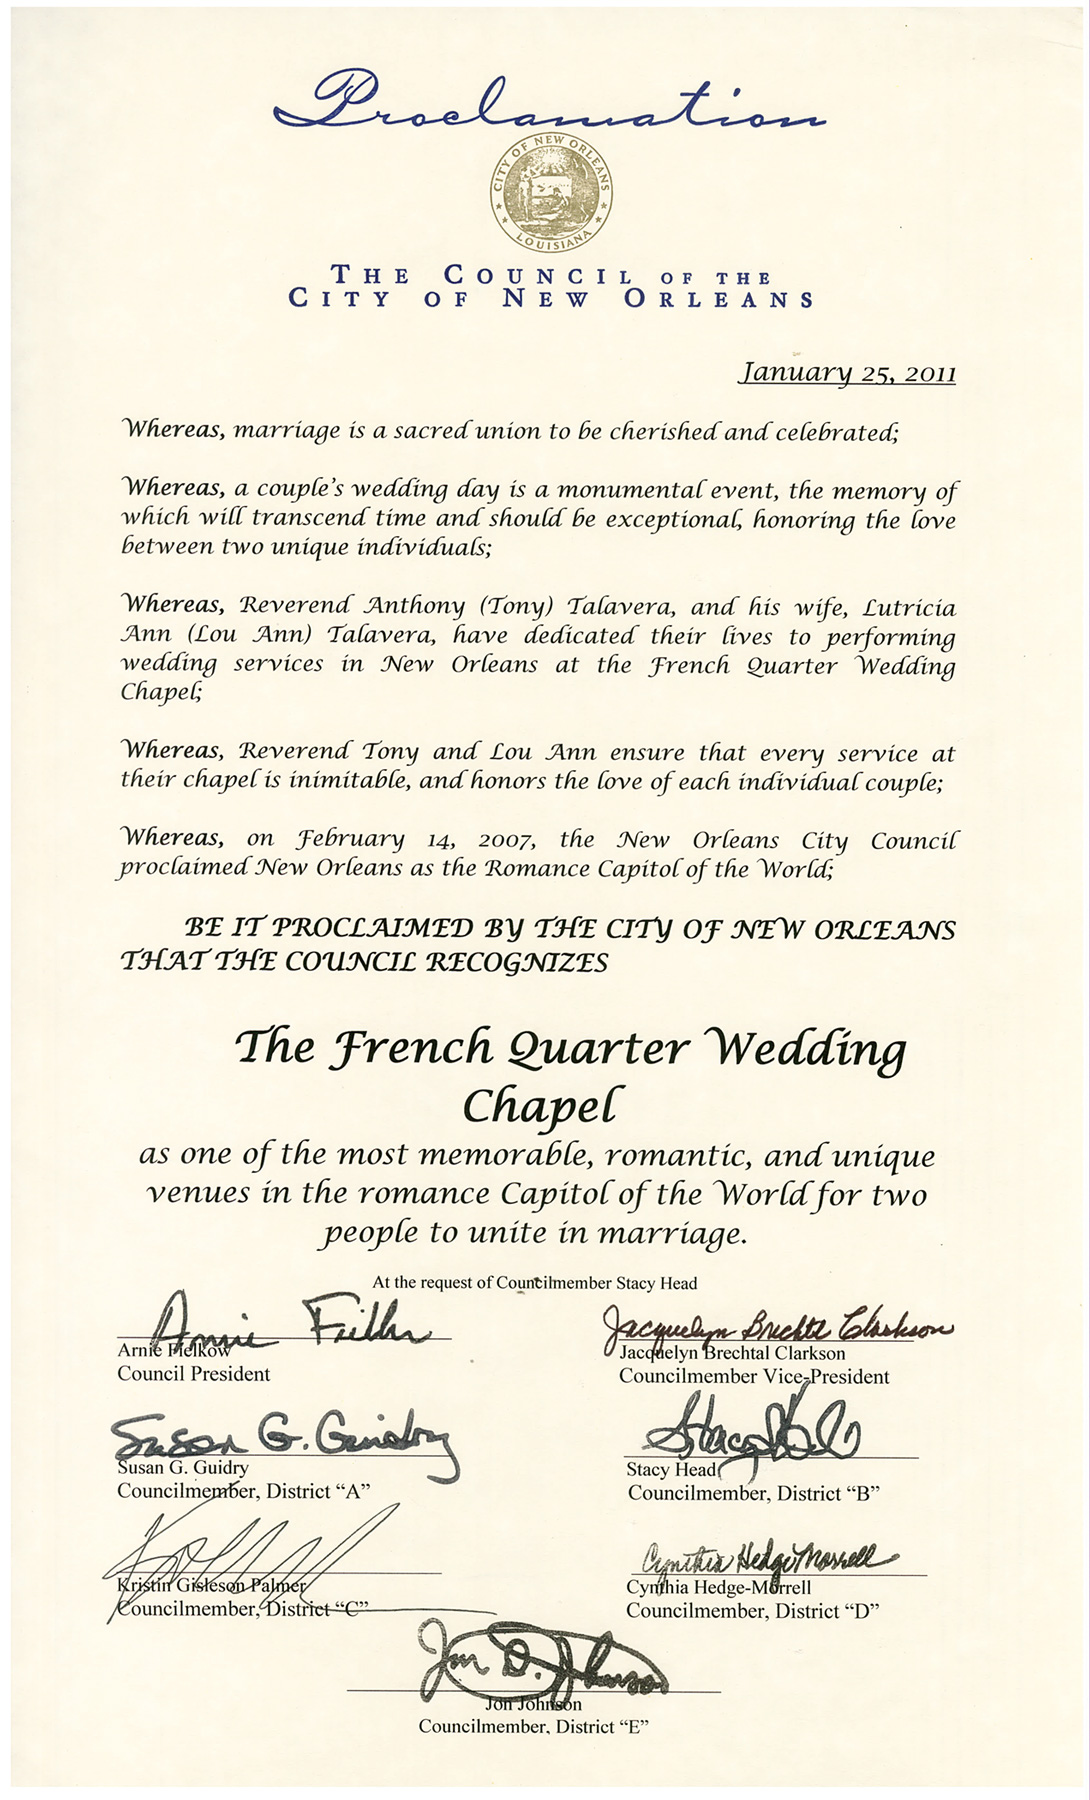 City-of-New-Orleans-Proclamation